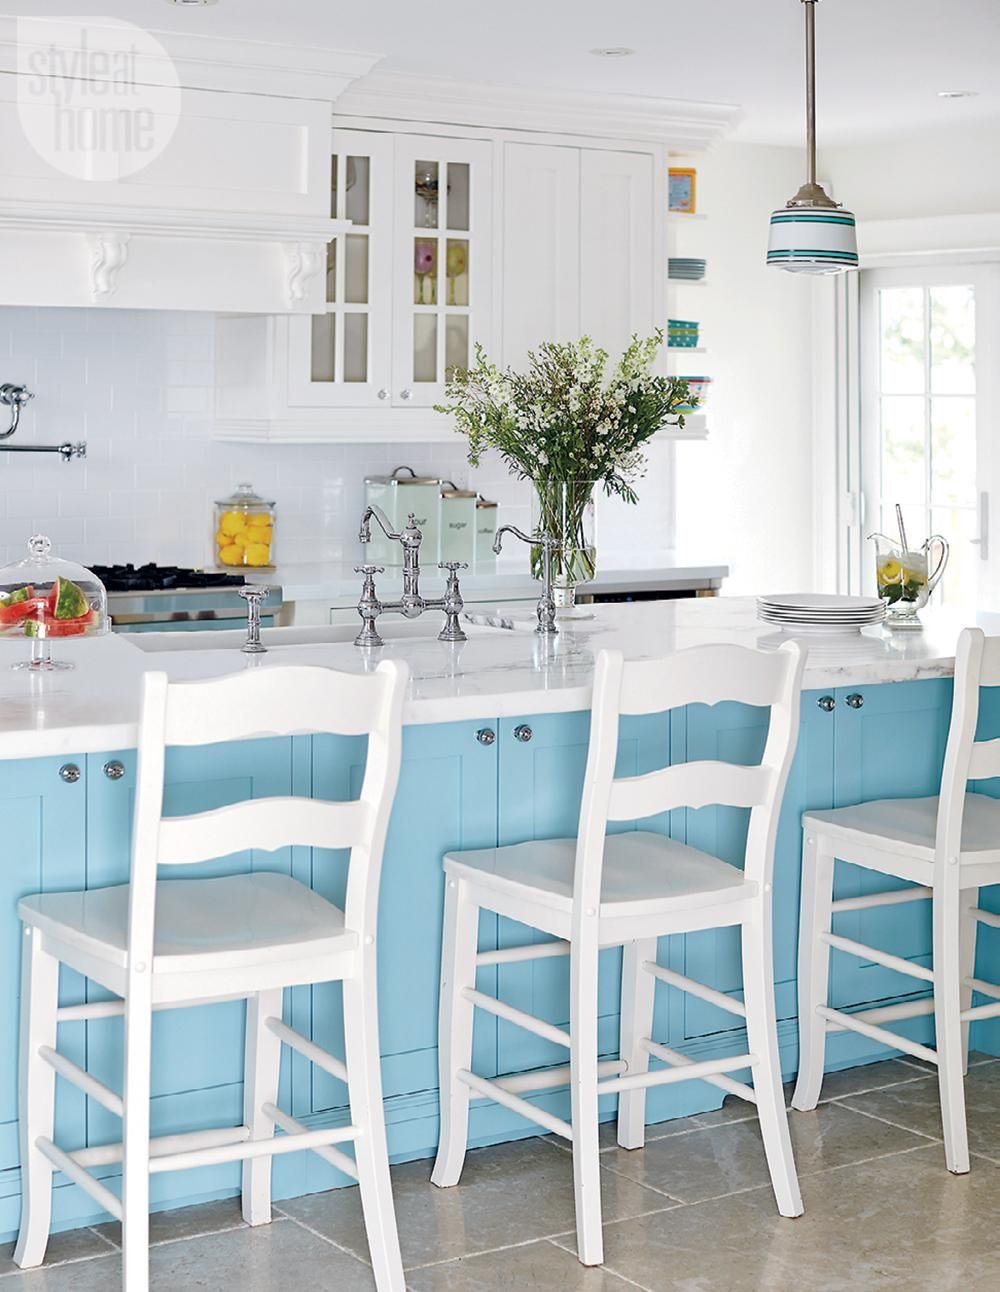 House tour: Eclectic shabby chic | Shabby chic style, House tours ...